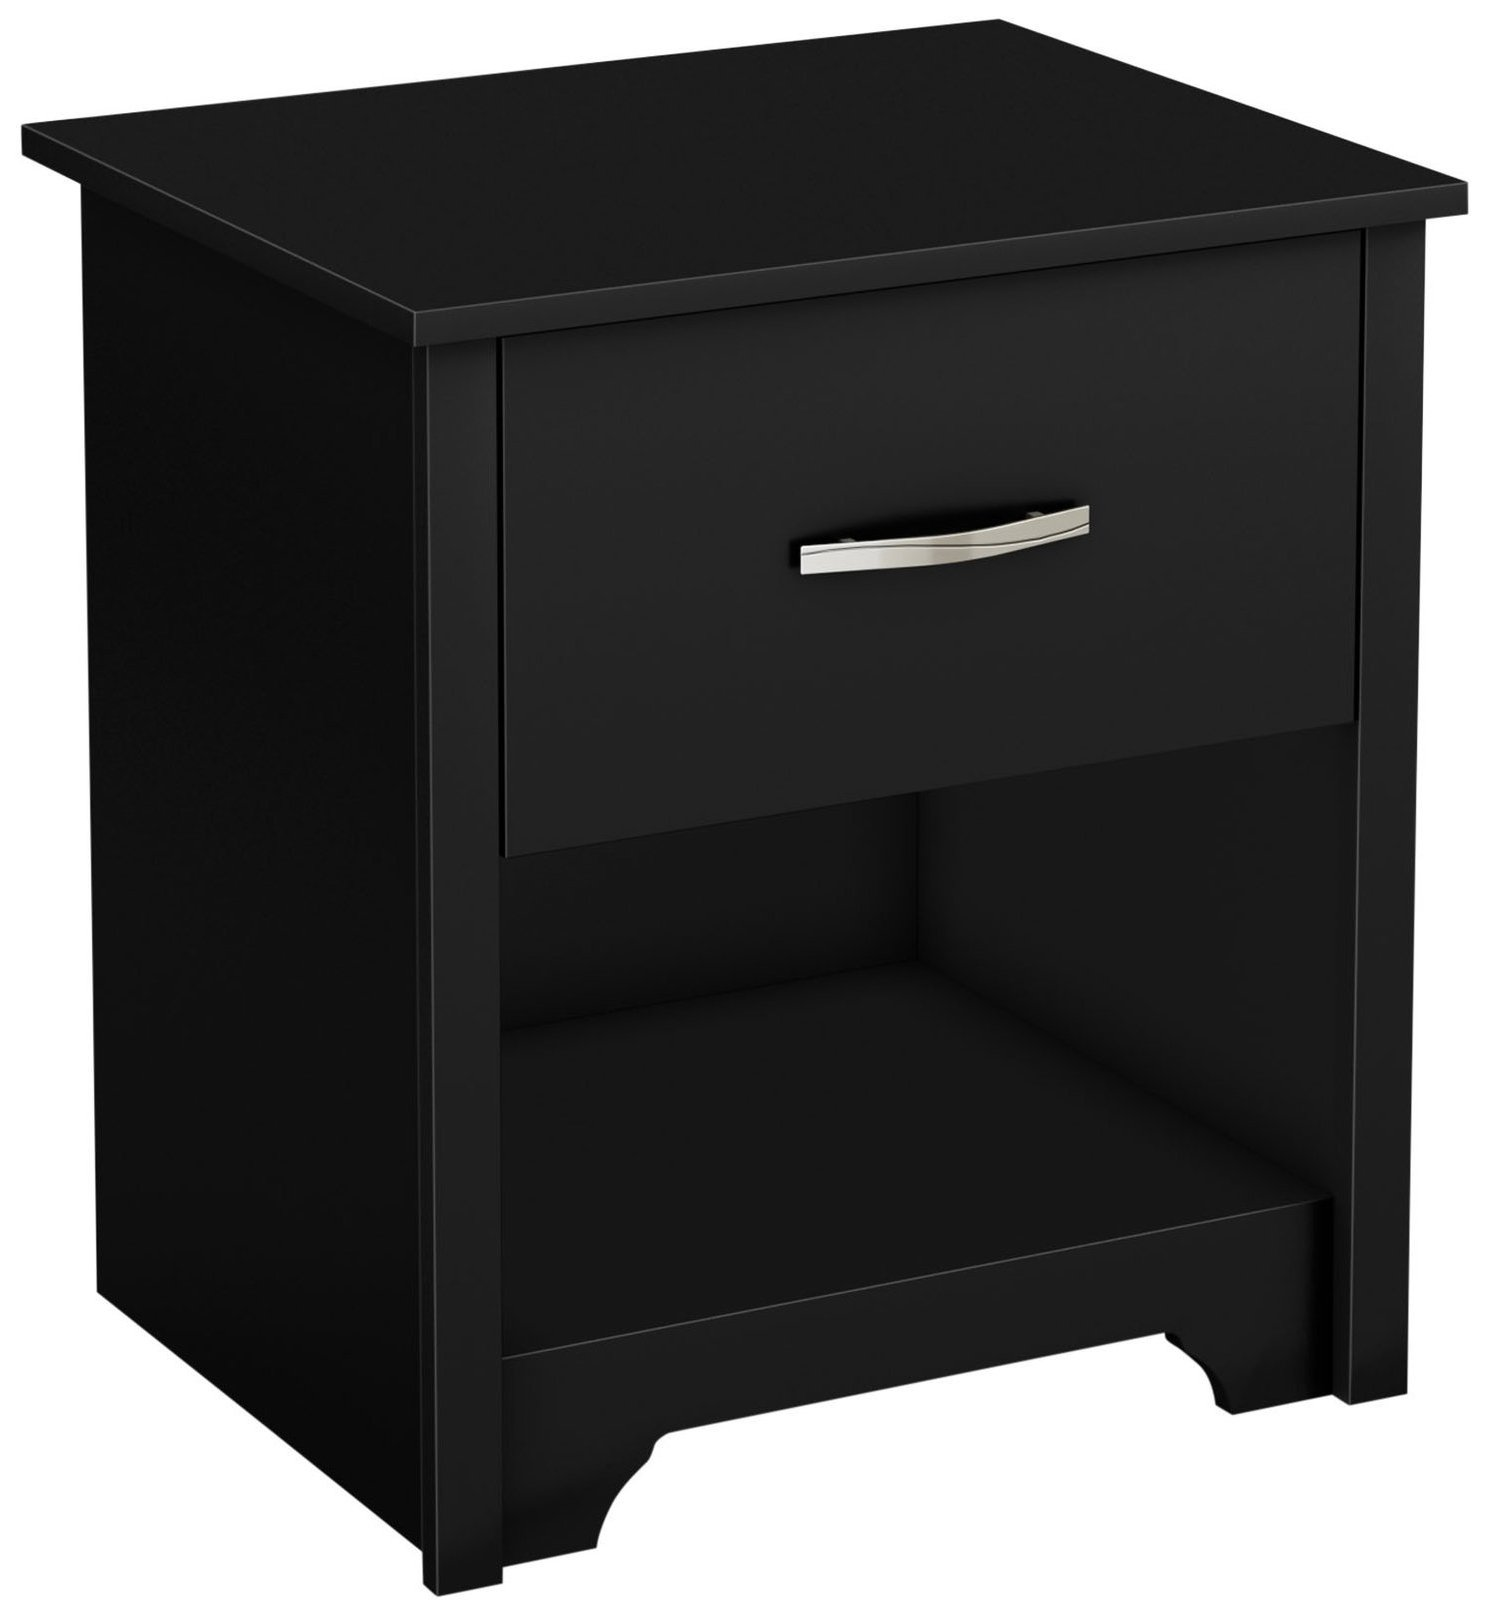 South Shore Fusion Nightstand, Pure Black with Grooved Metal Handles by South Shore (Image #1)